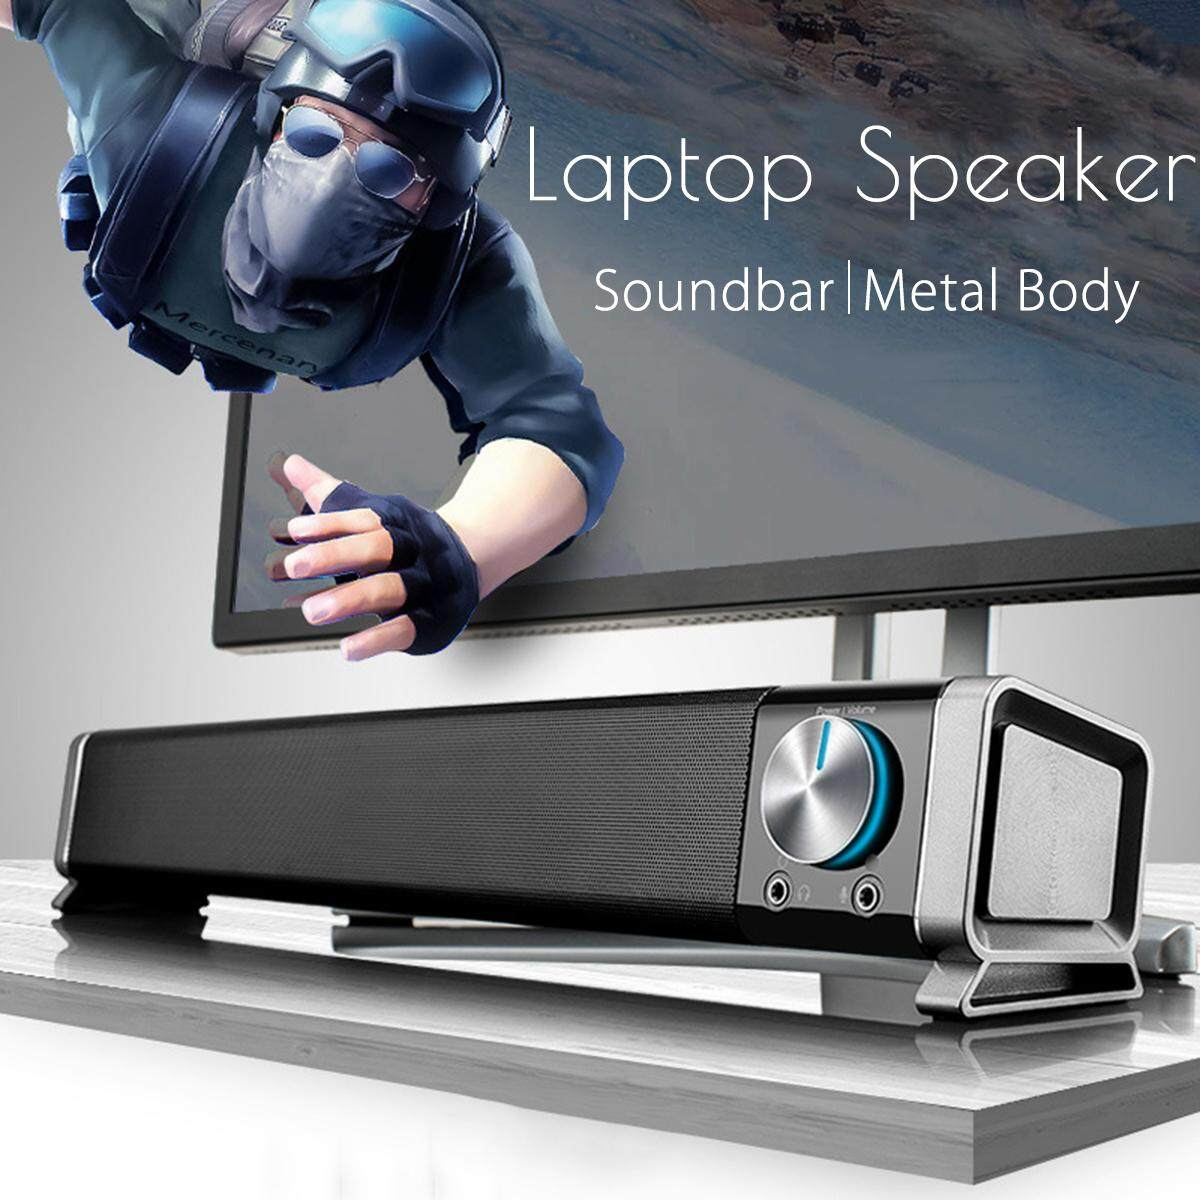 3.5mm Portable Soundbar Speaker Subwoofer TV Home Theater For Laptop PC Tablet Malaysia